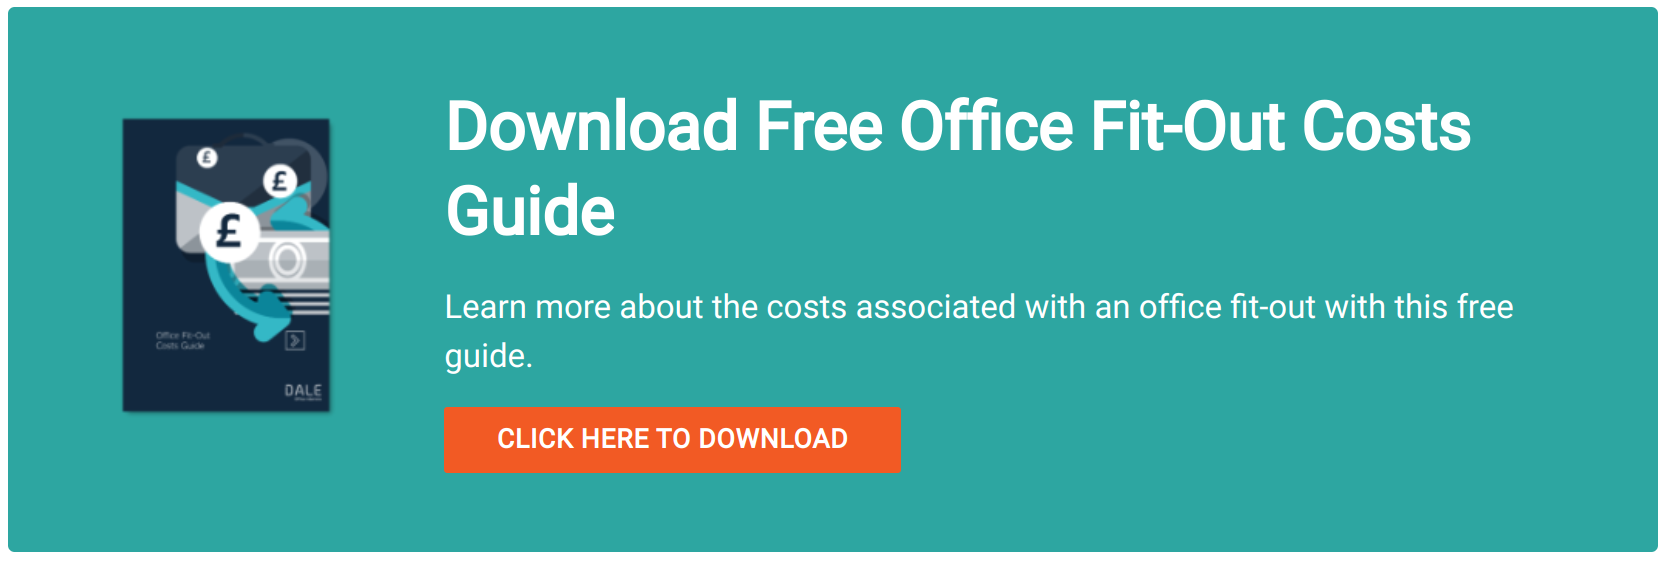 Download Free Office Fit-Out Costs Guide